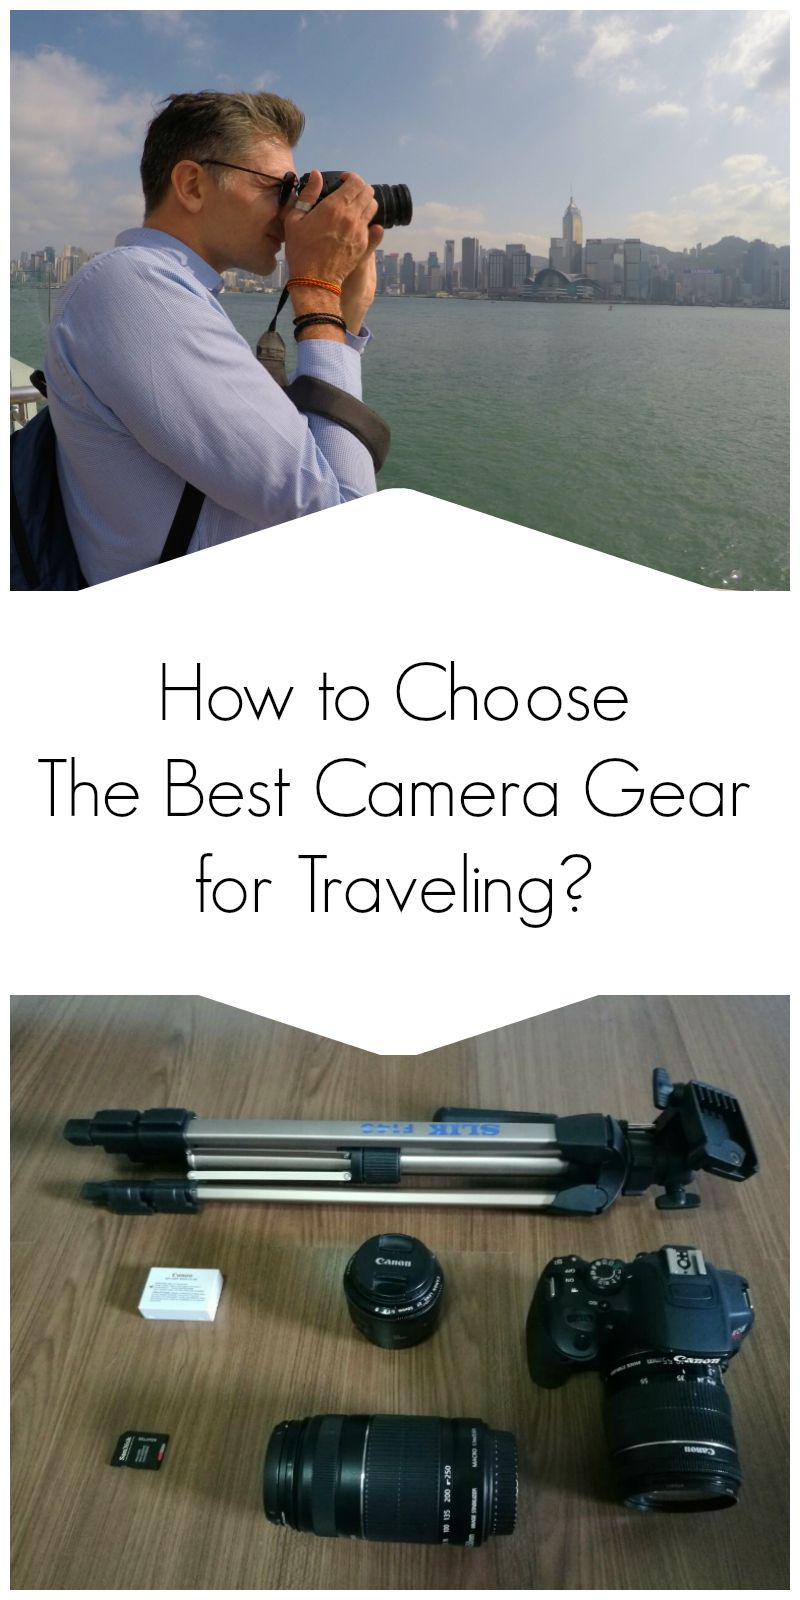 Check out our other travel gear buying guides Check out our other travel gear buying guides new photo